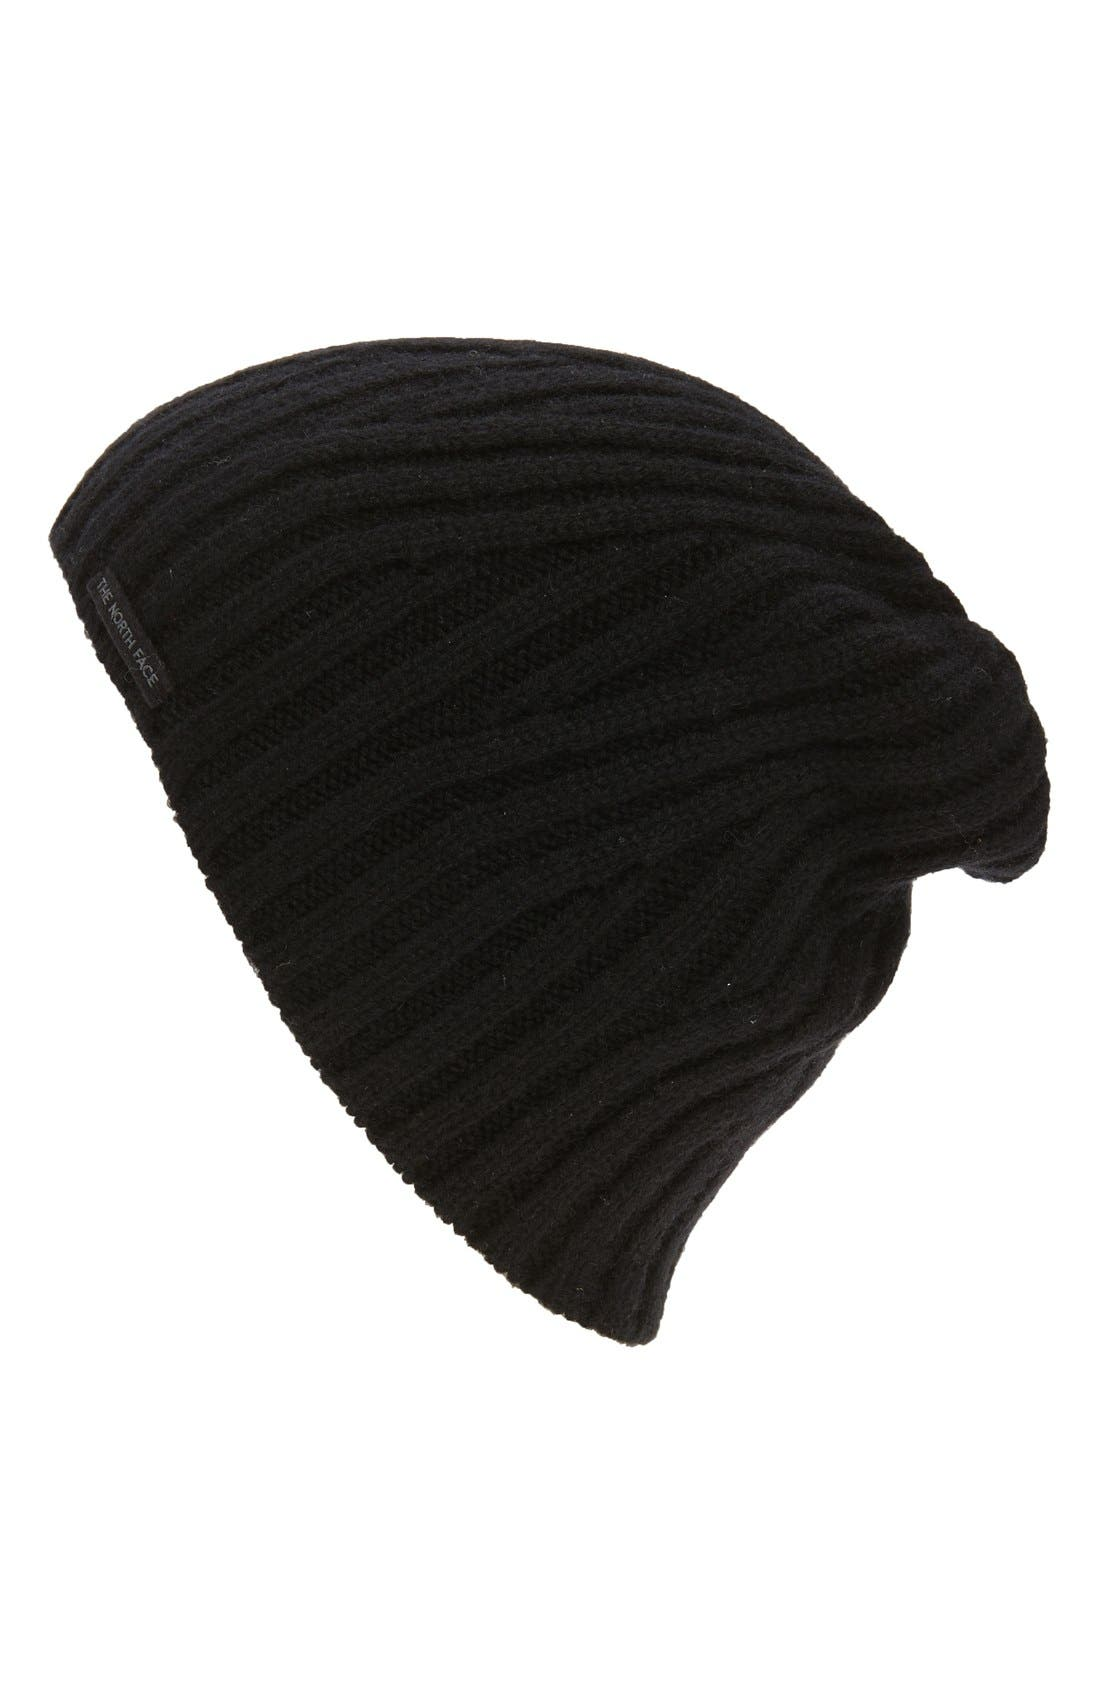 Alternate Image 1 Selected - The North Face Classic Wool Blend Beanie